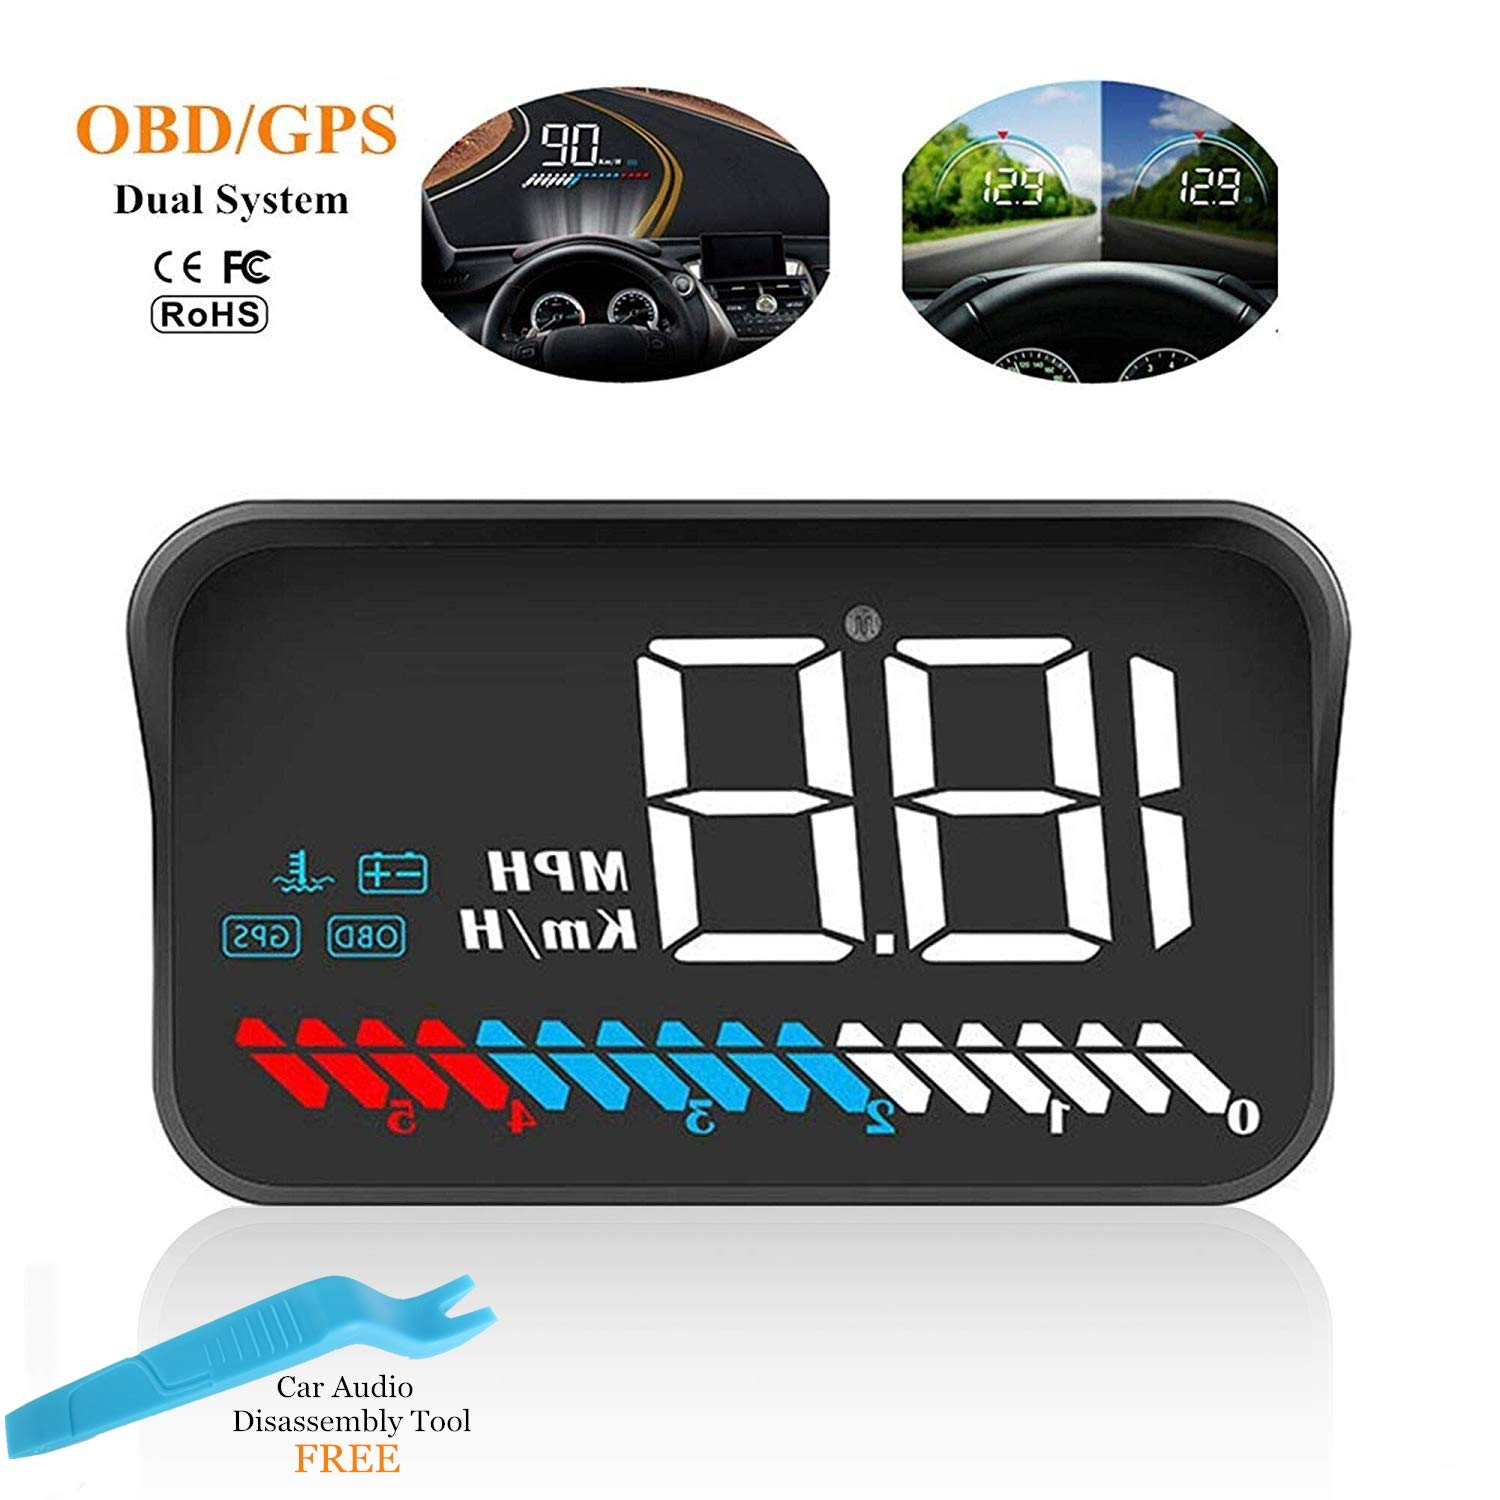 ACECAR Car Universal Dual System HUD Head Up Display OBD II/GPS Interface,Vehicle Speed MPH KM/h,Engine RPM,OverSpeed Warning,Mileage Measurement,Water Temperature,Voltage by ACECAR